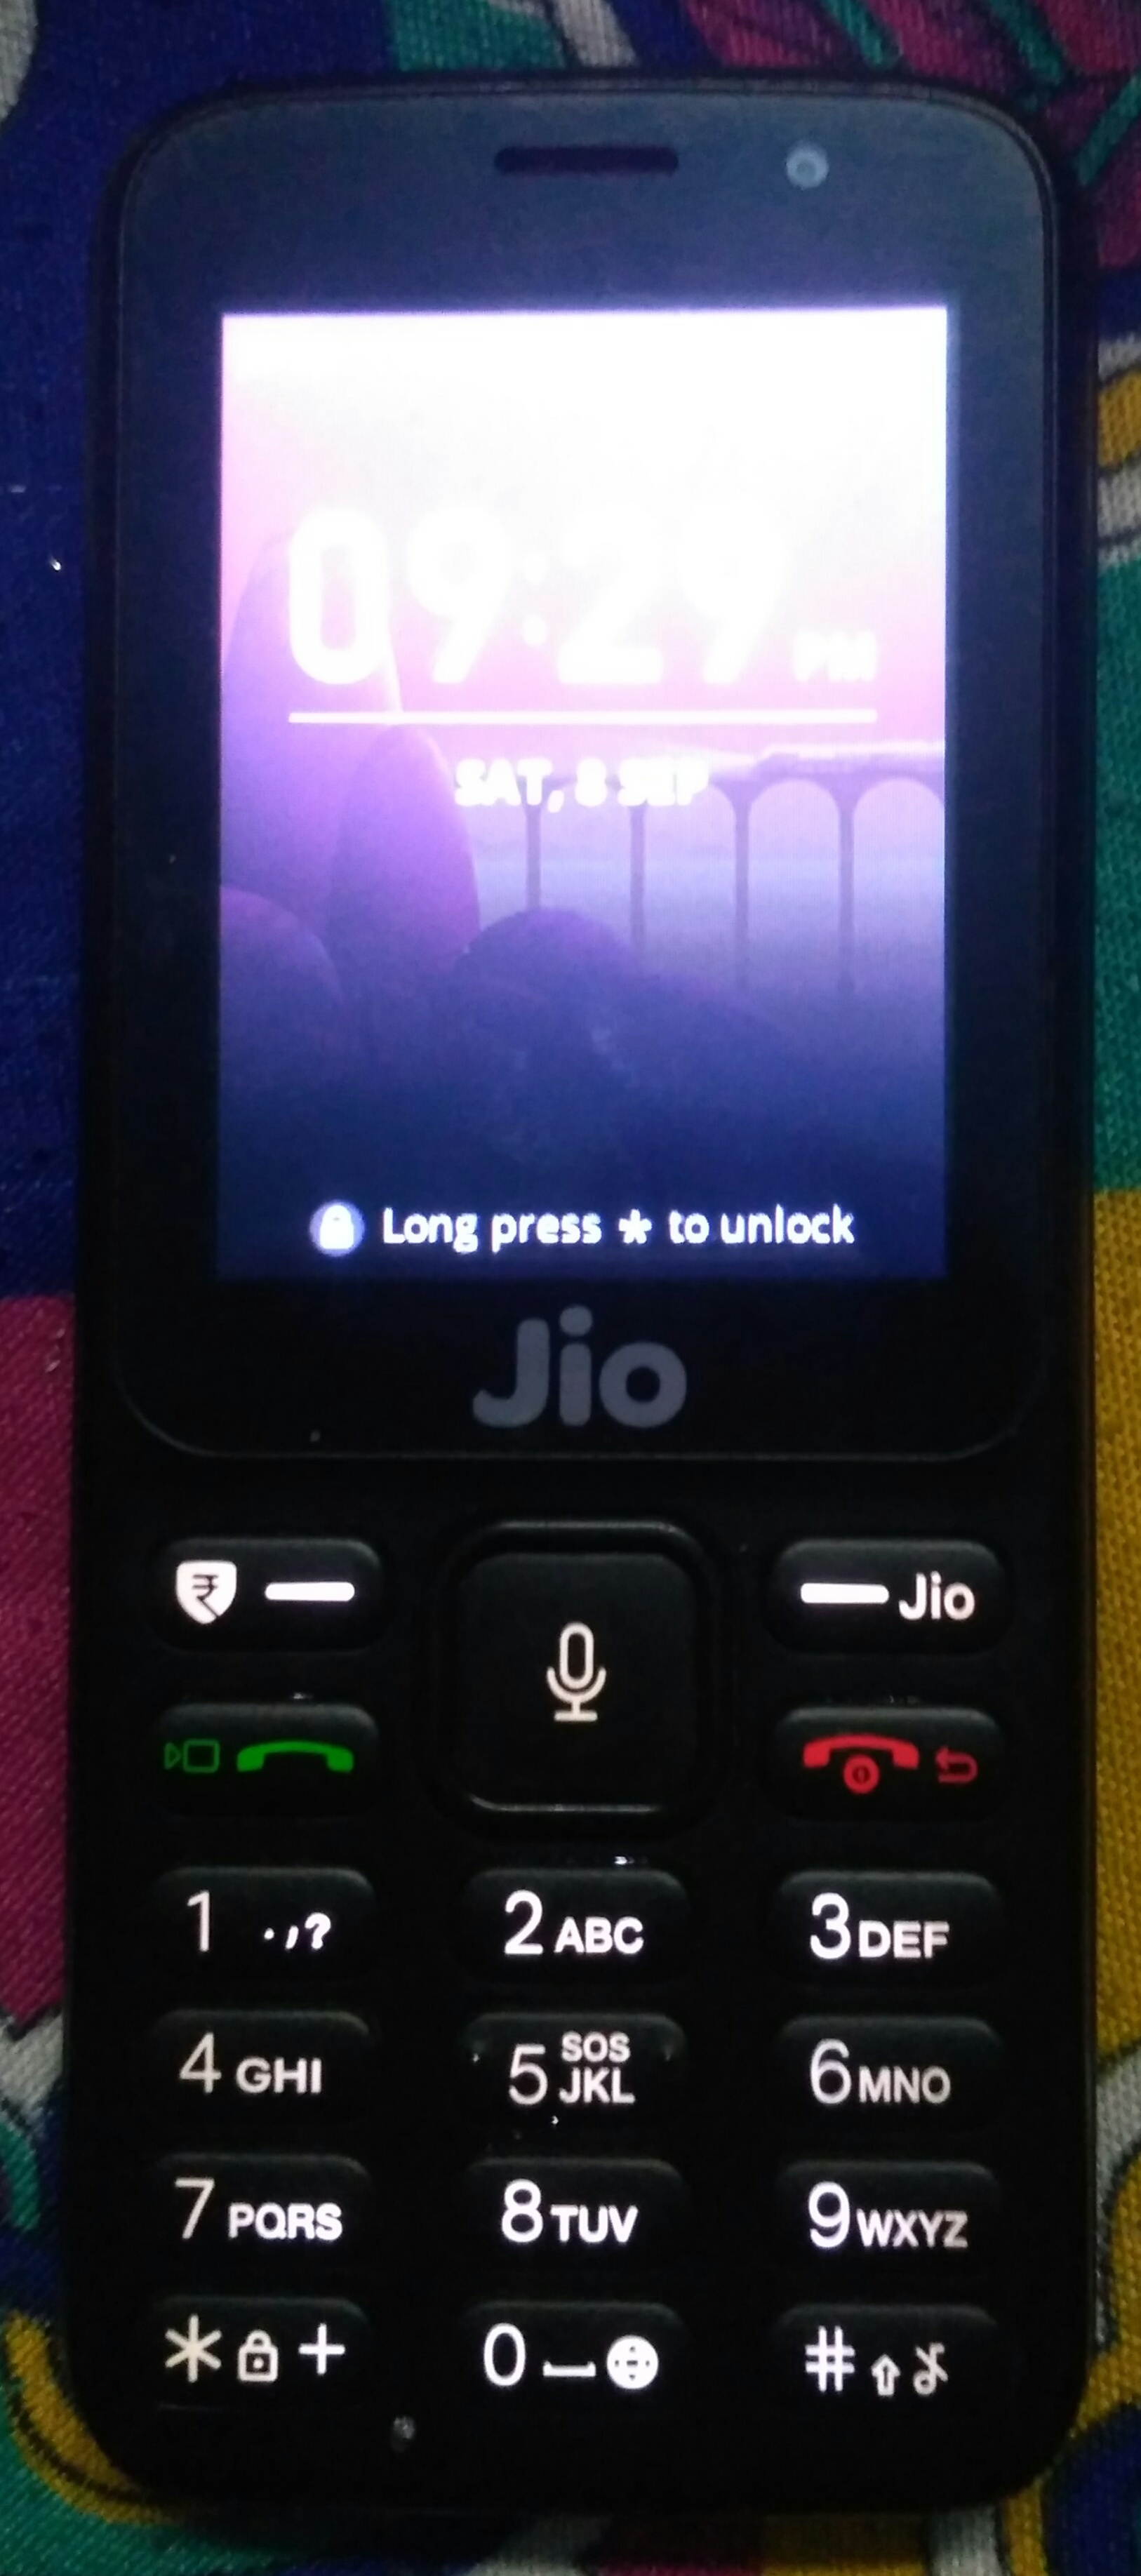 What is your experience of using JioPhone? - Quora